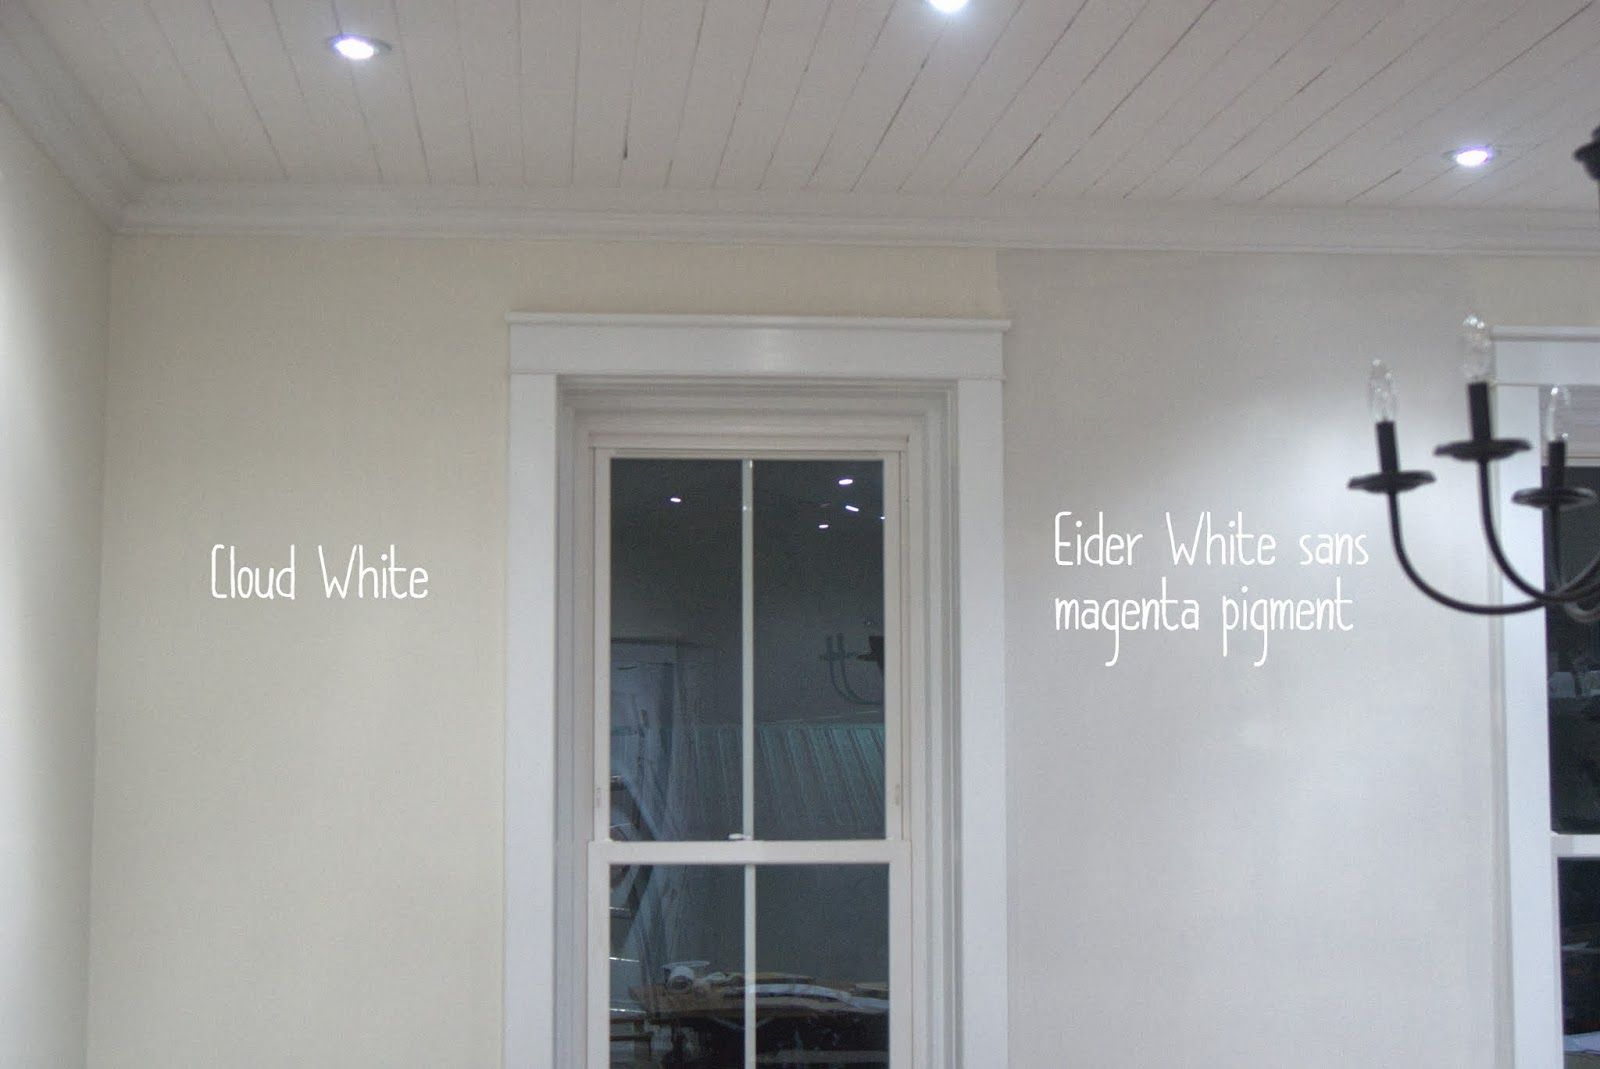 Eider White For Living Room Walls Cloud White For